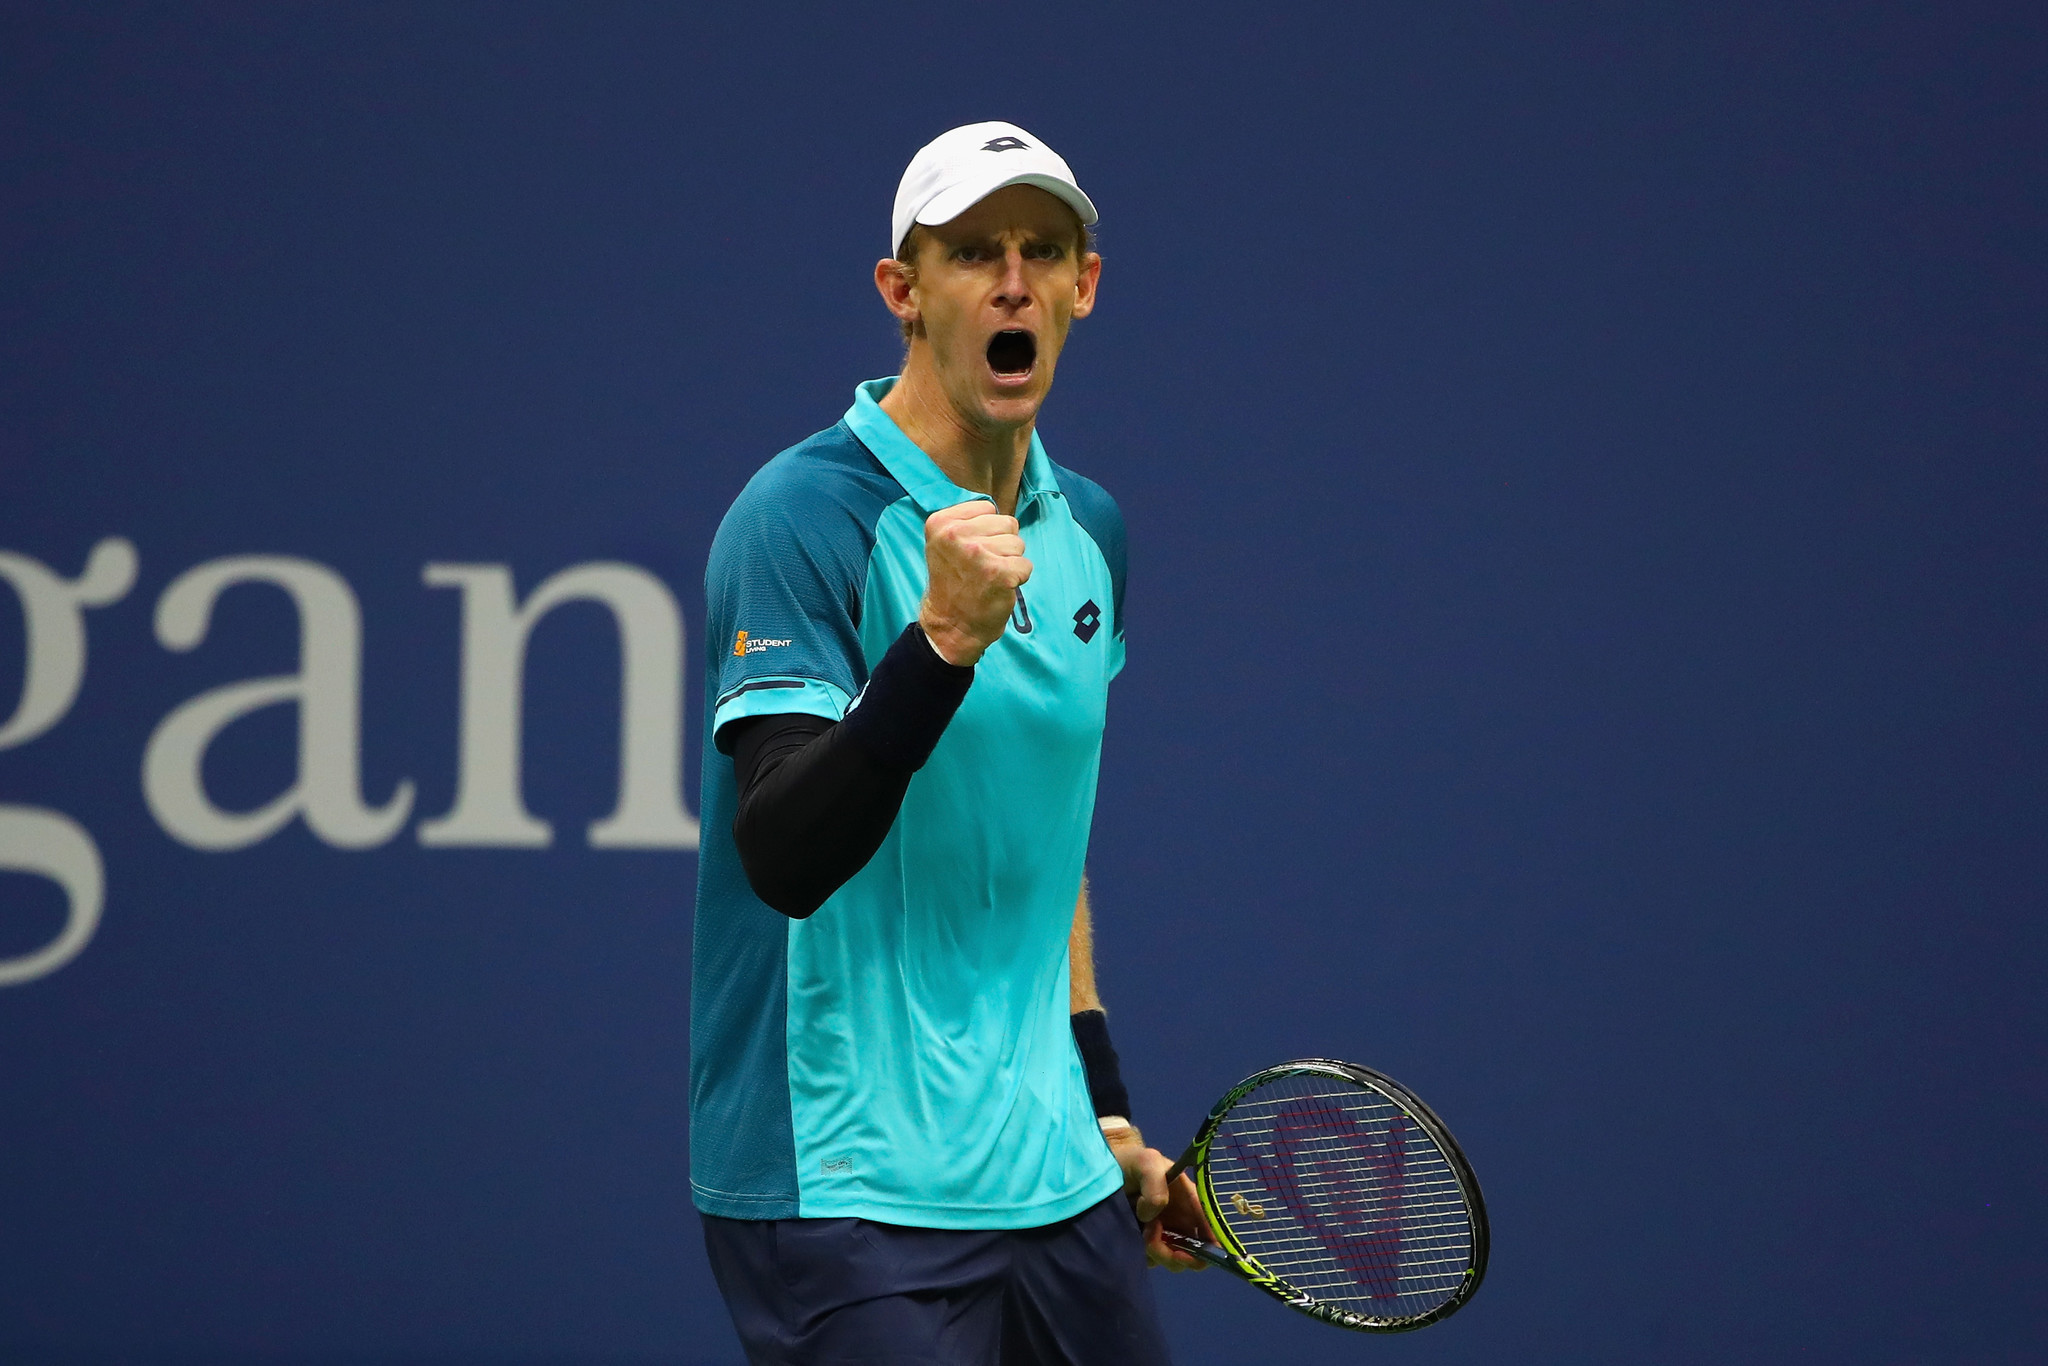 kevin anderson - photo #15